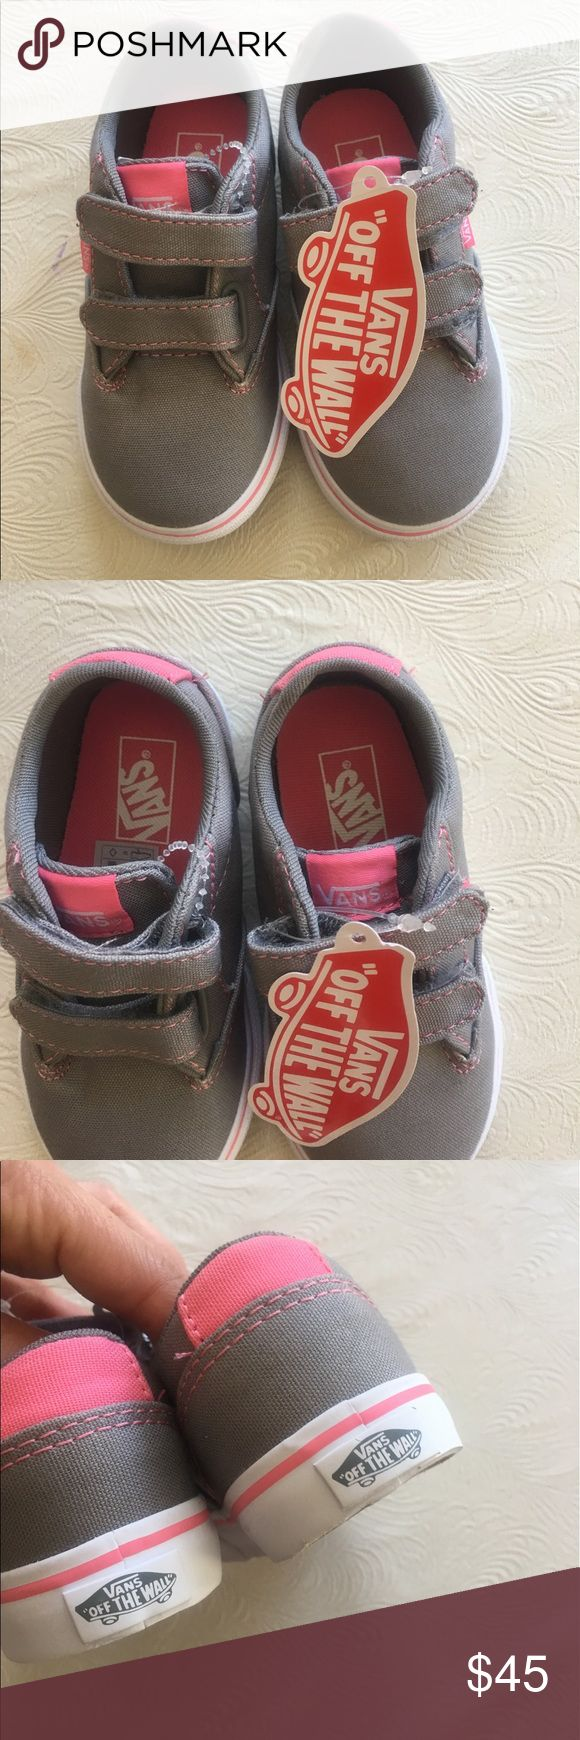 NEW toddler girls VANS Velcro straps sneakers New gray/pink Velcro straps sneakers by VANS. Really cute.0ffers welcome . Size 7 (#26) Vans Shoes Sneakers